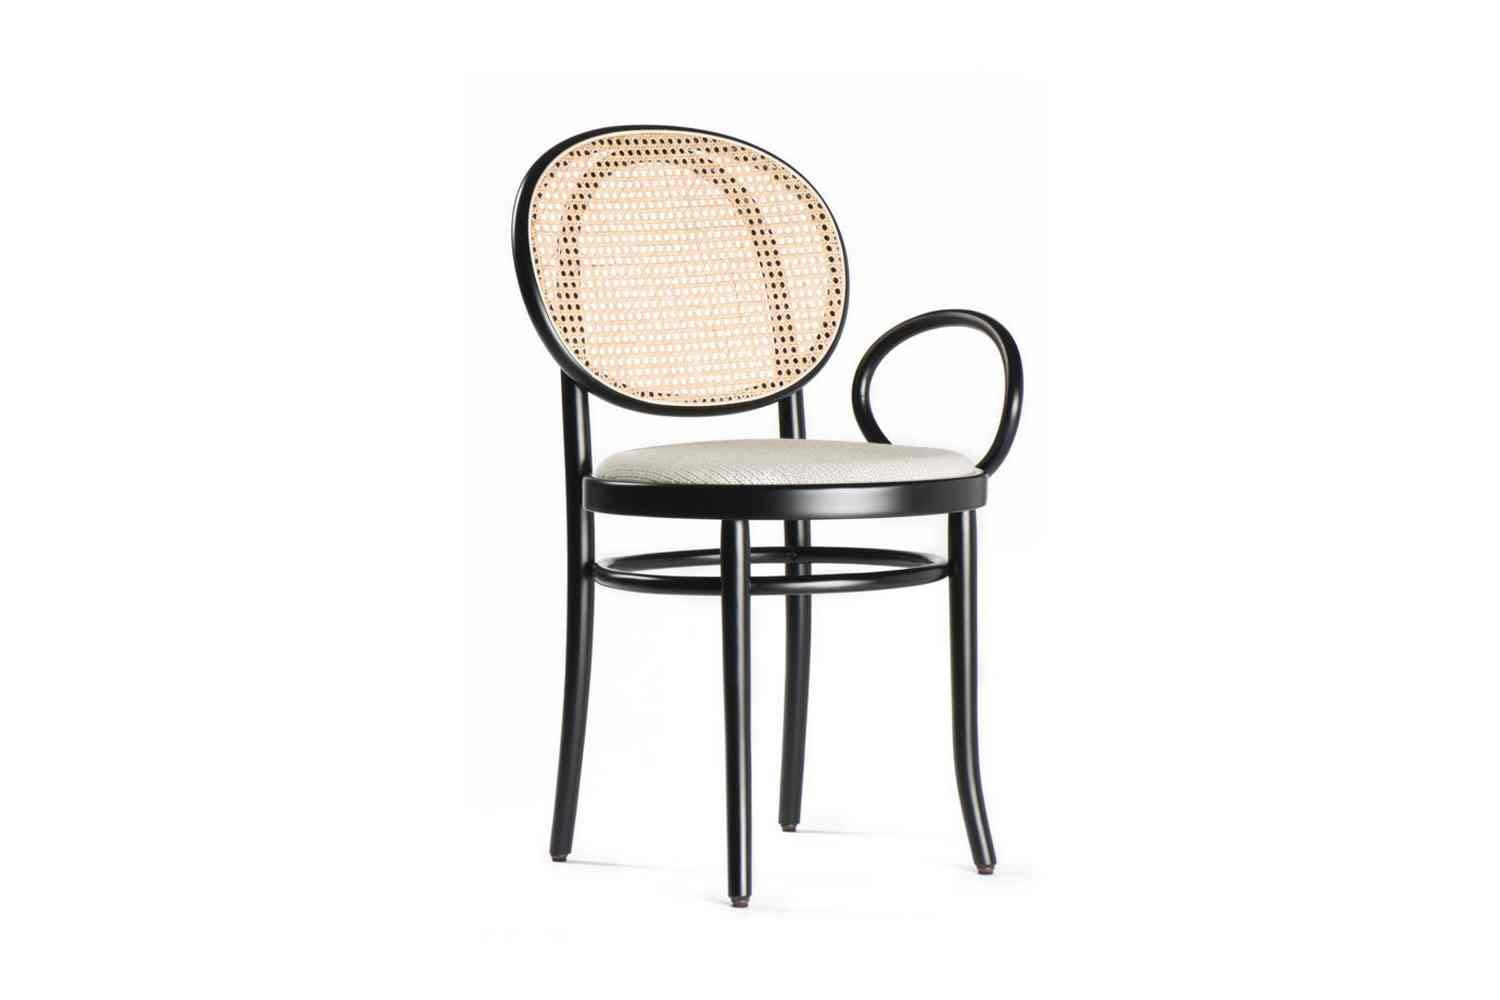 N. 0 Chair by Front for Wiener GTV Design